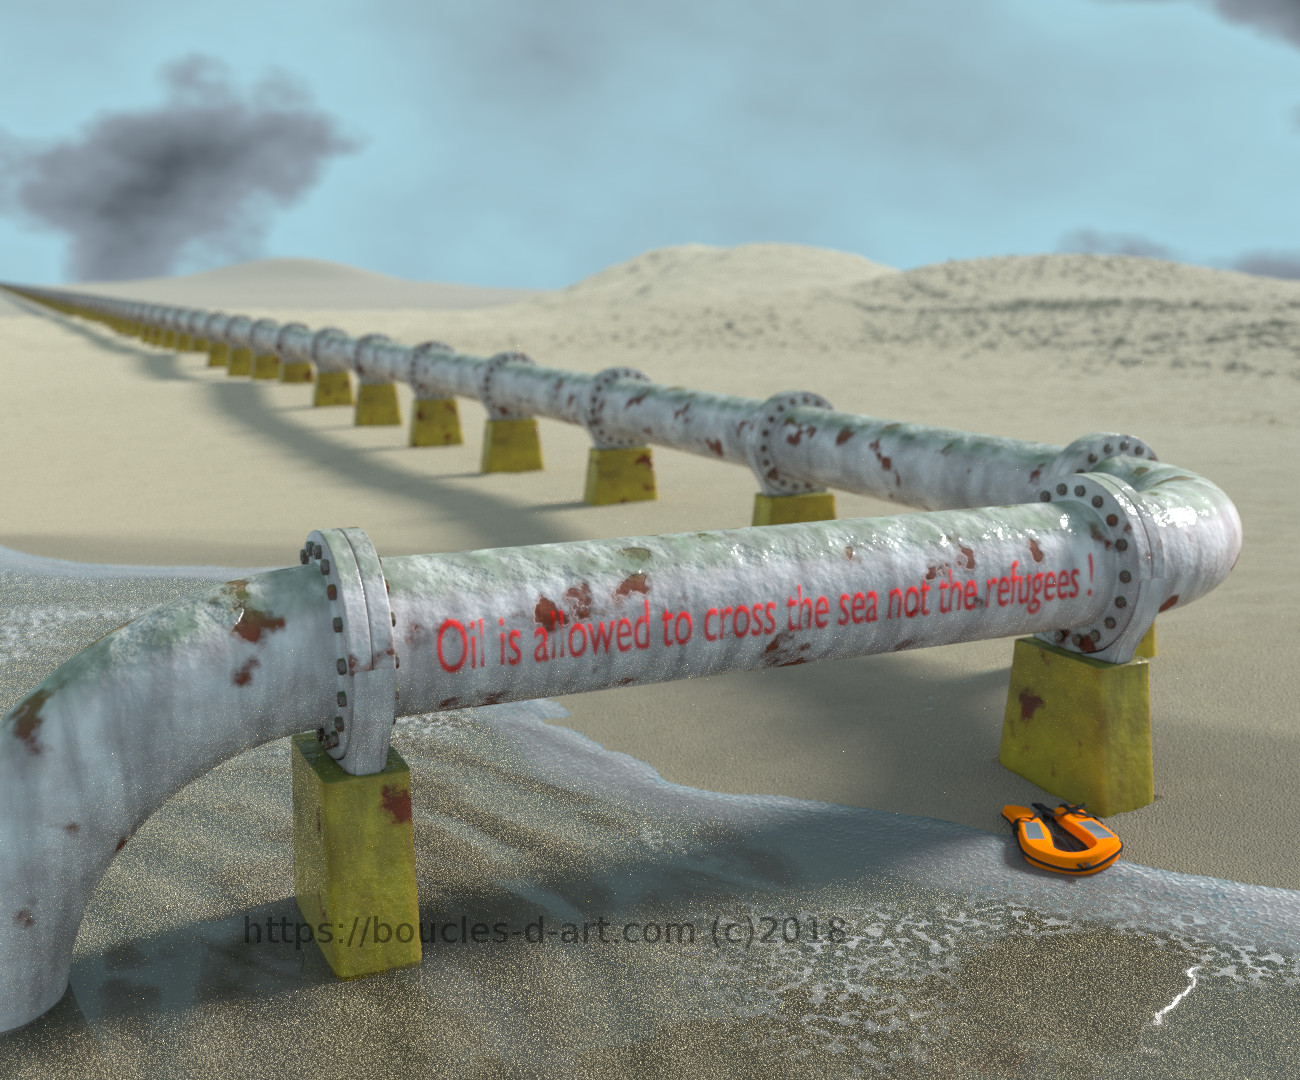 Pipeline traversant les frontières. Slogan : Oil is allowed to cross the sea, not the refugees !